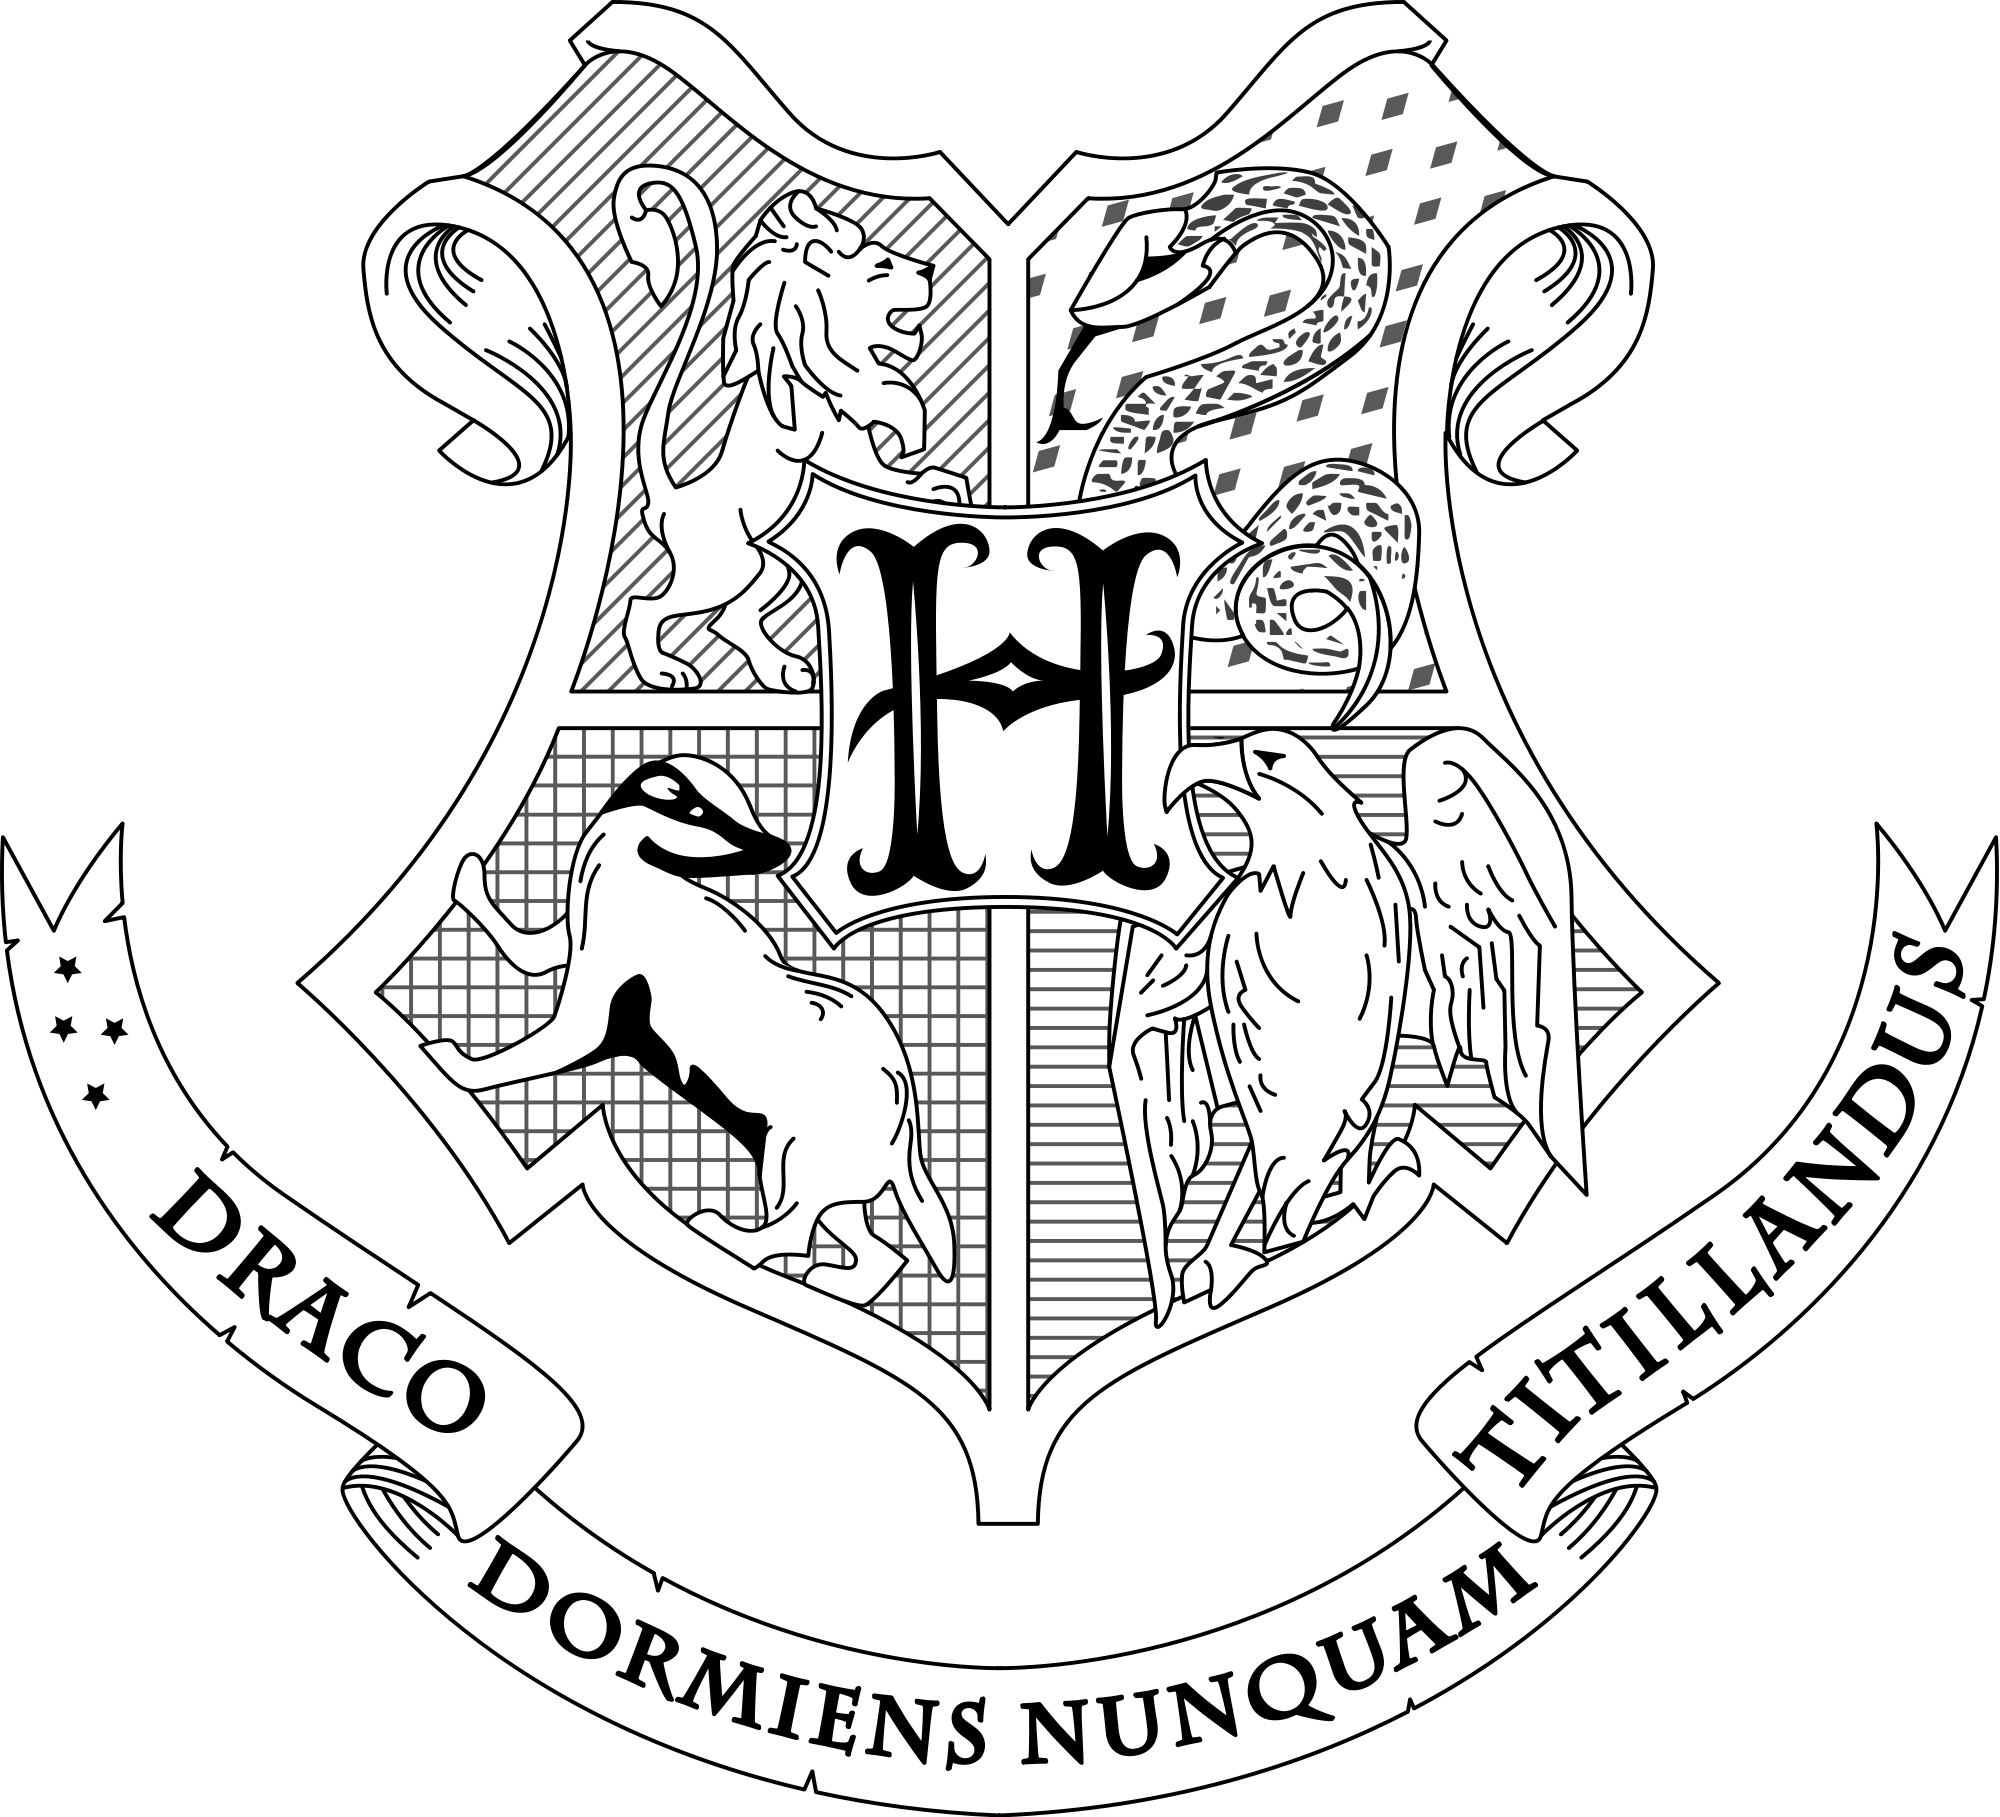 hogwarts crest black and white png #66352091